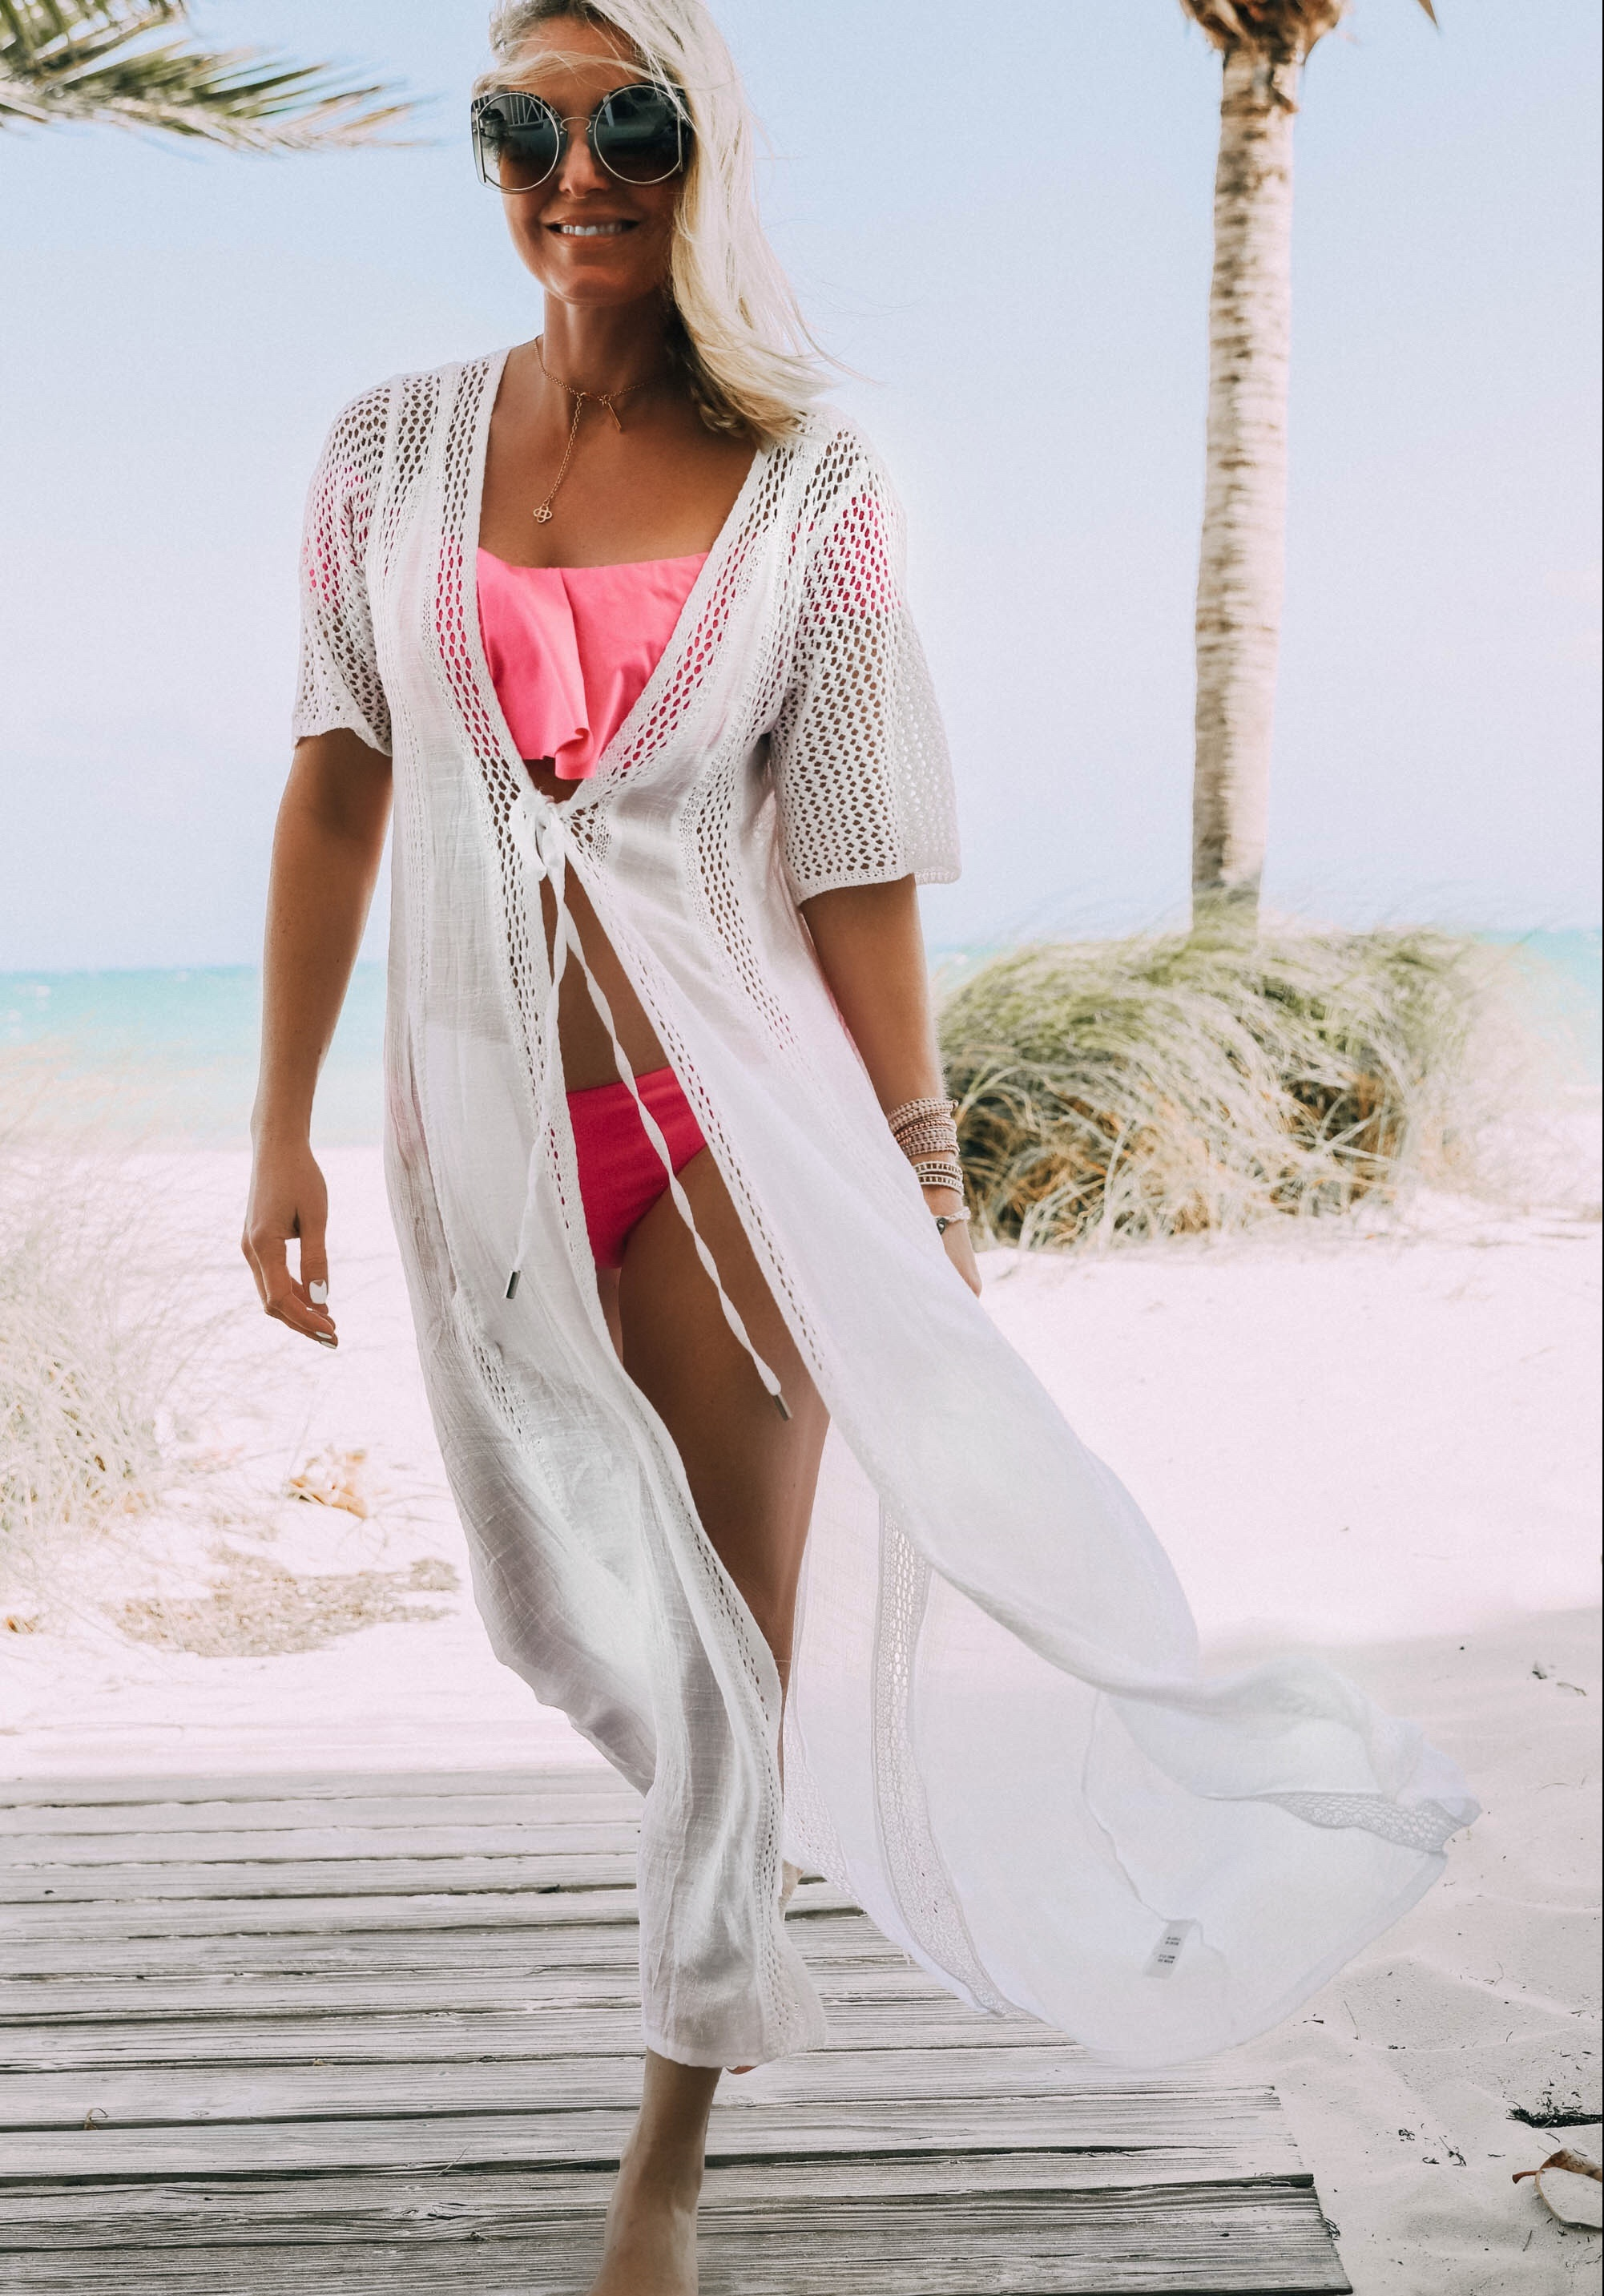 Fashion blogger wearing white crochet swimsuit coverup by Elan over pink bikini bathing suit in the Bahamas